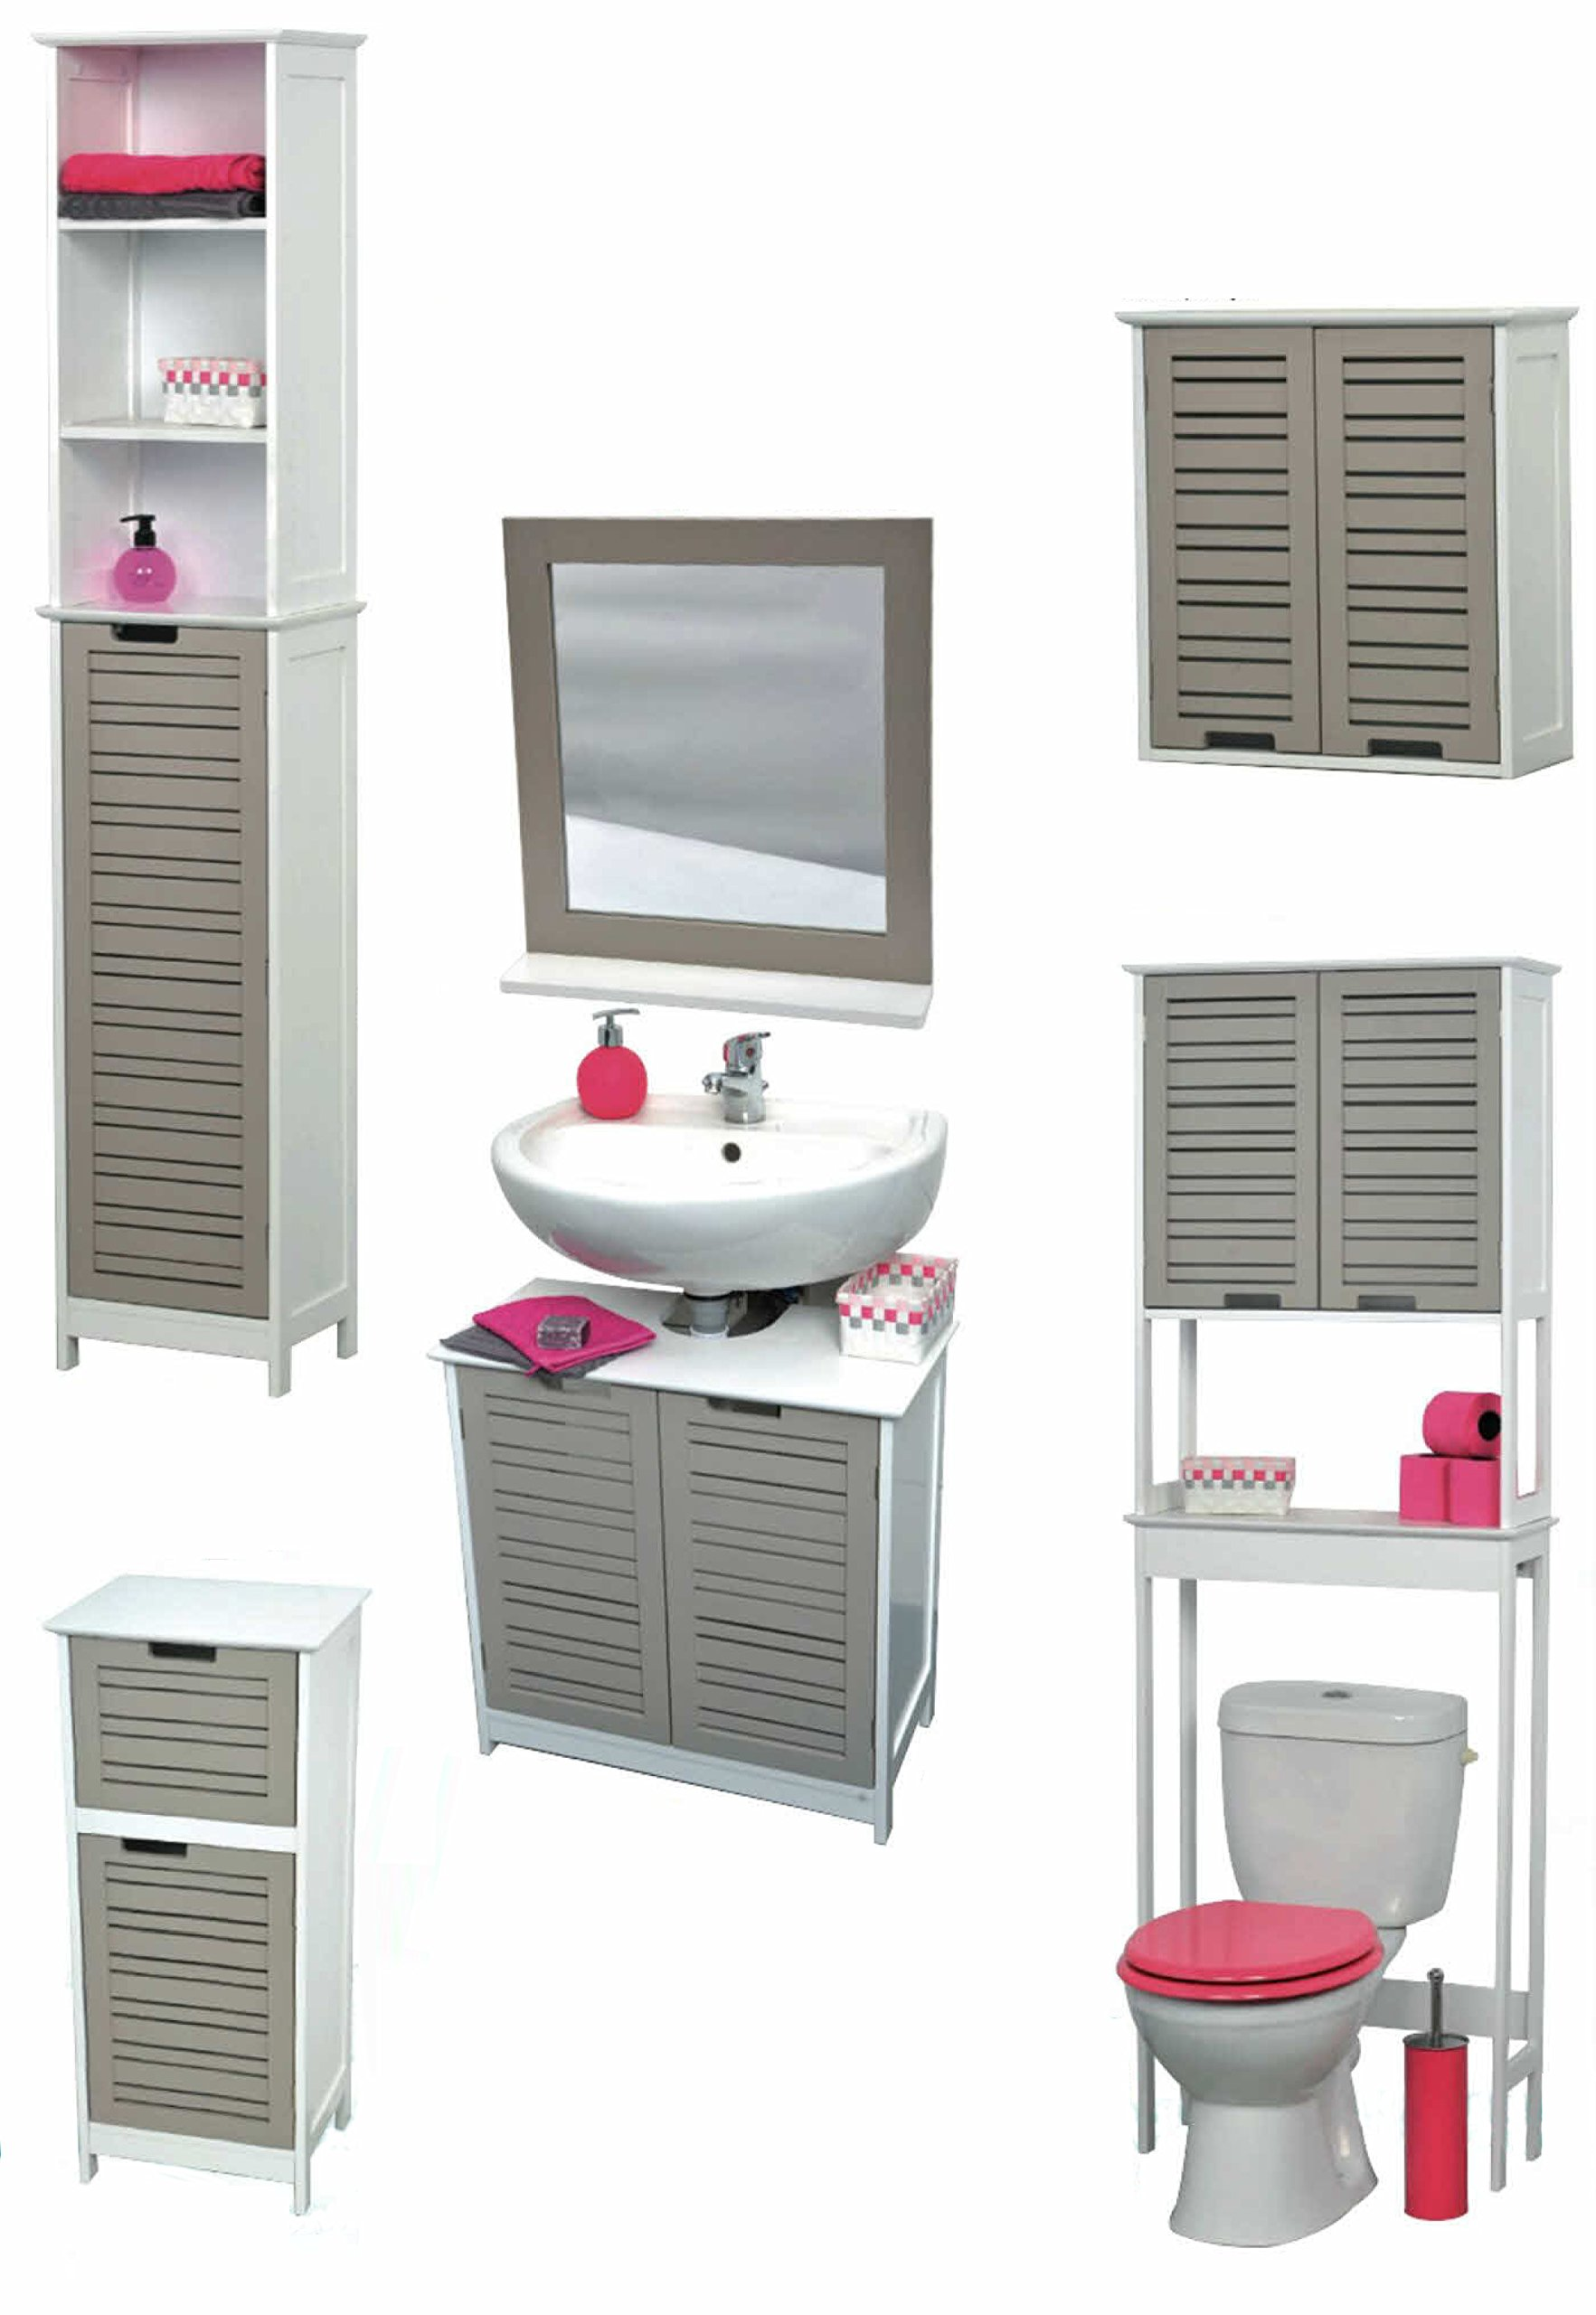 EVIDECO 9900302 Free Standing Non Pedestal Under Sink Vanity Cabinet Bath Storage So Romantic Taupe by EVIDECO (Image #5)